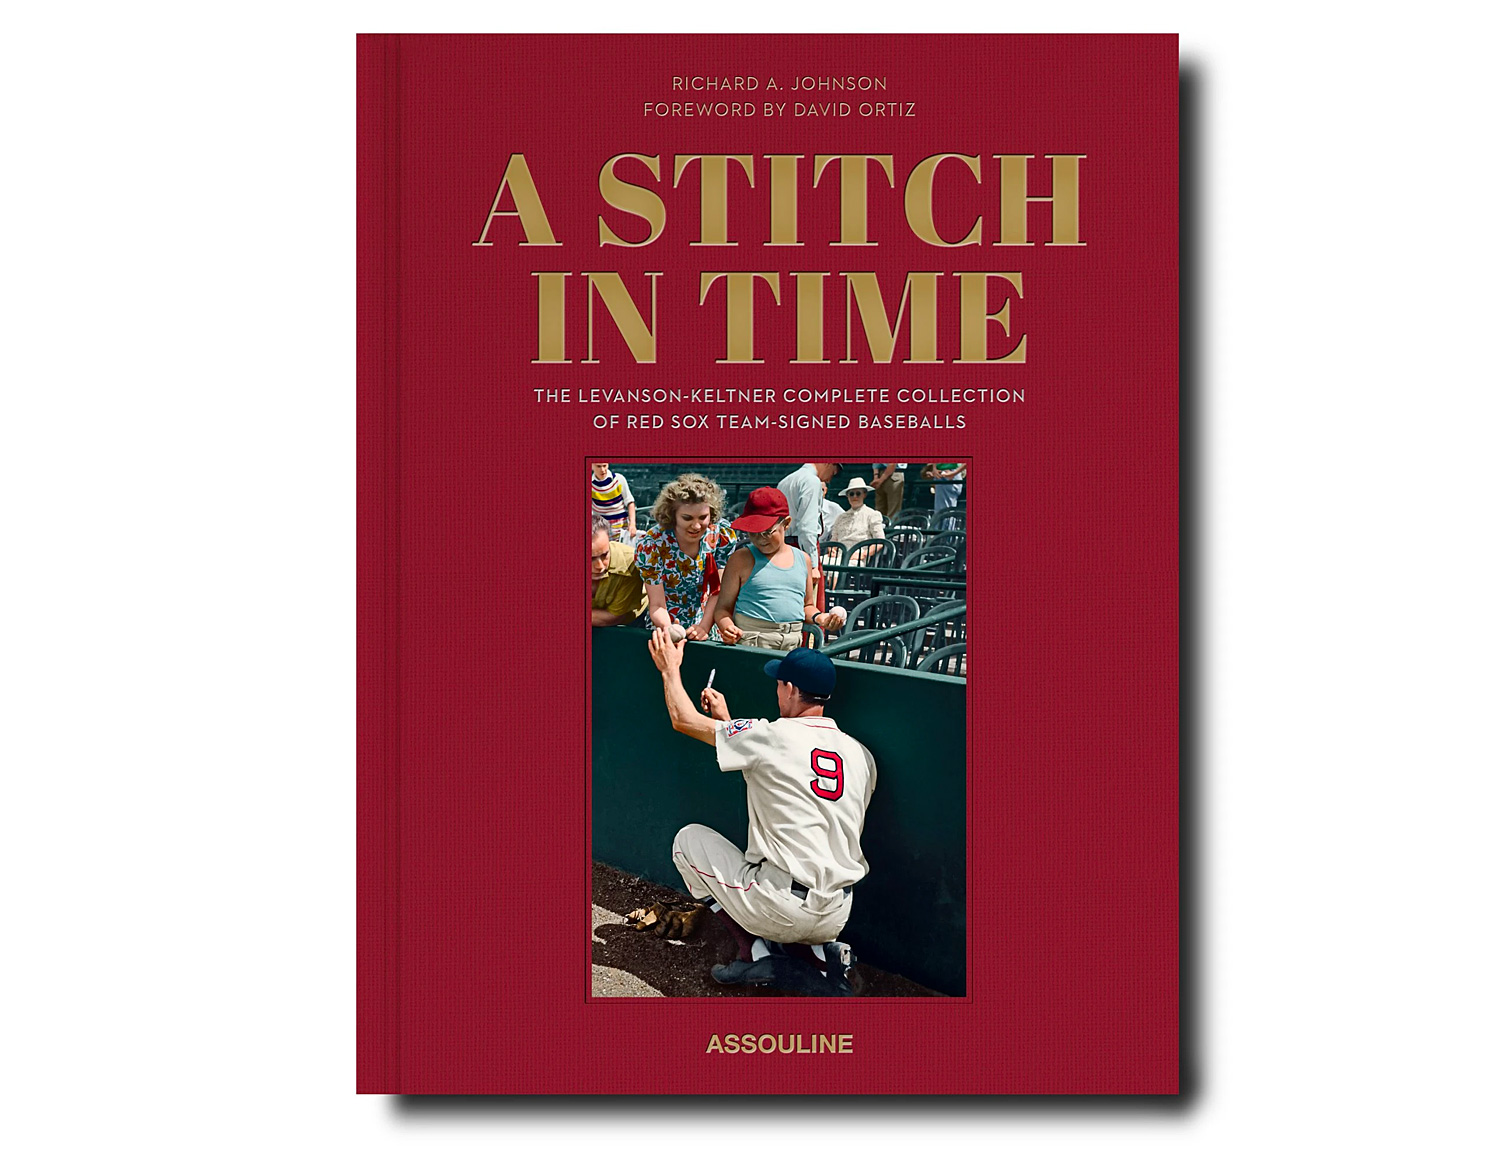 A Stitch In Time at werd.com